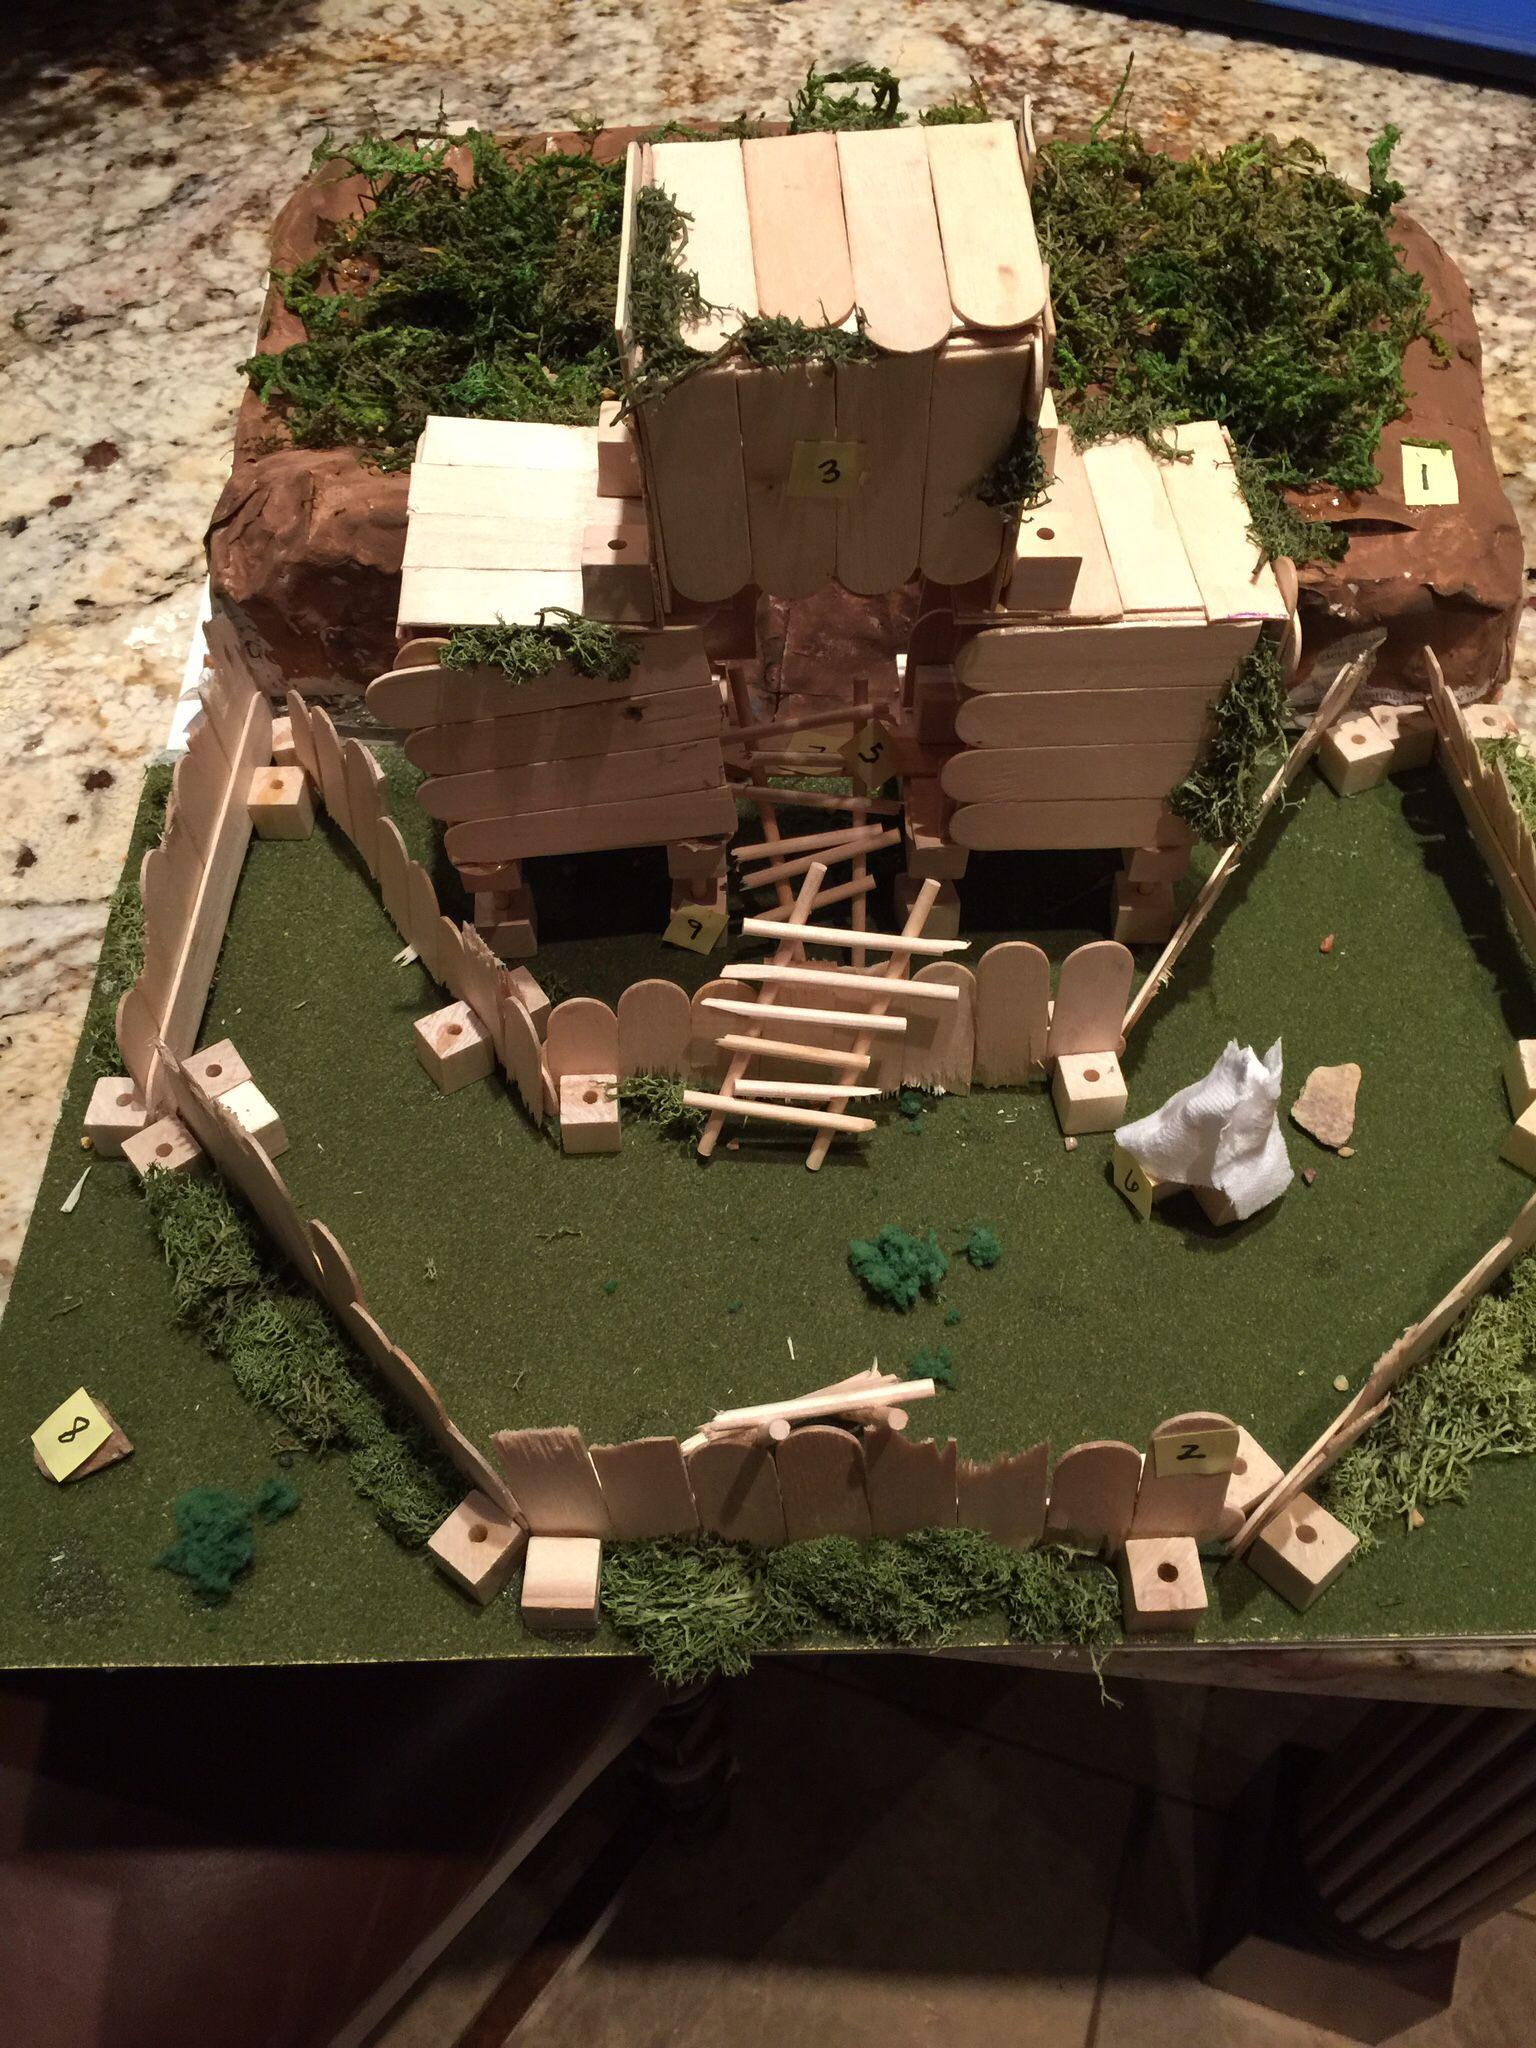 robinson crusoe lesson plan literature lesson robinson crusoe project my son collin created a replica of what he believes